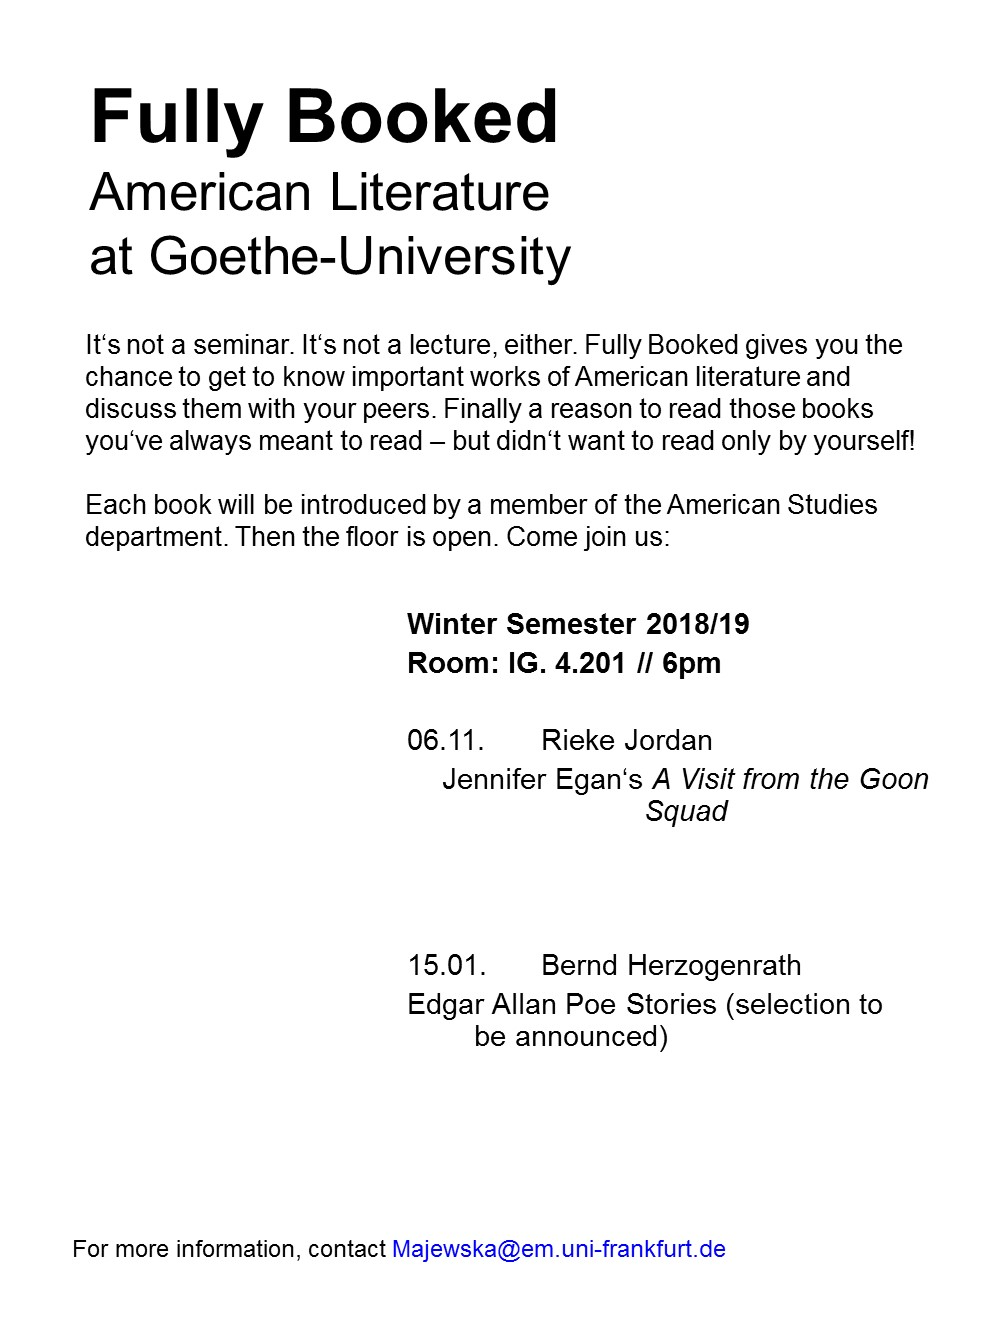 Fully Booked - American Literature at Goethe-University